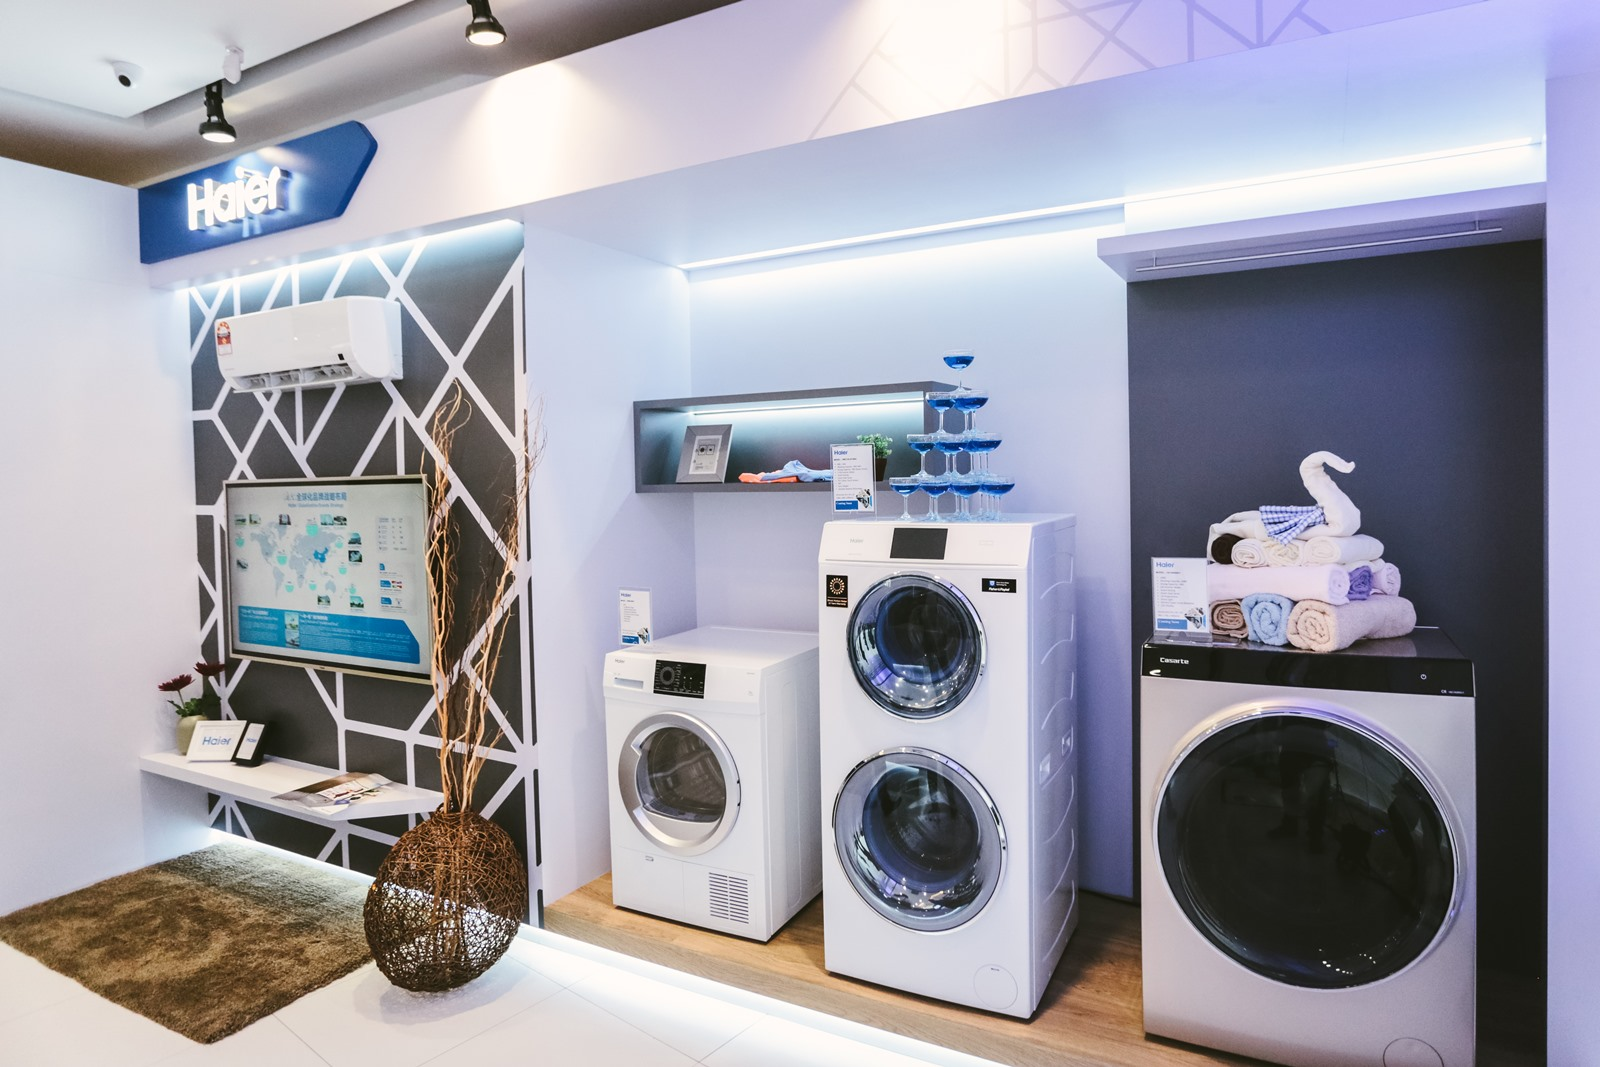 Household appliances on display at the Haier Experience Centre in Setiawalk, Puchong